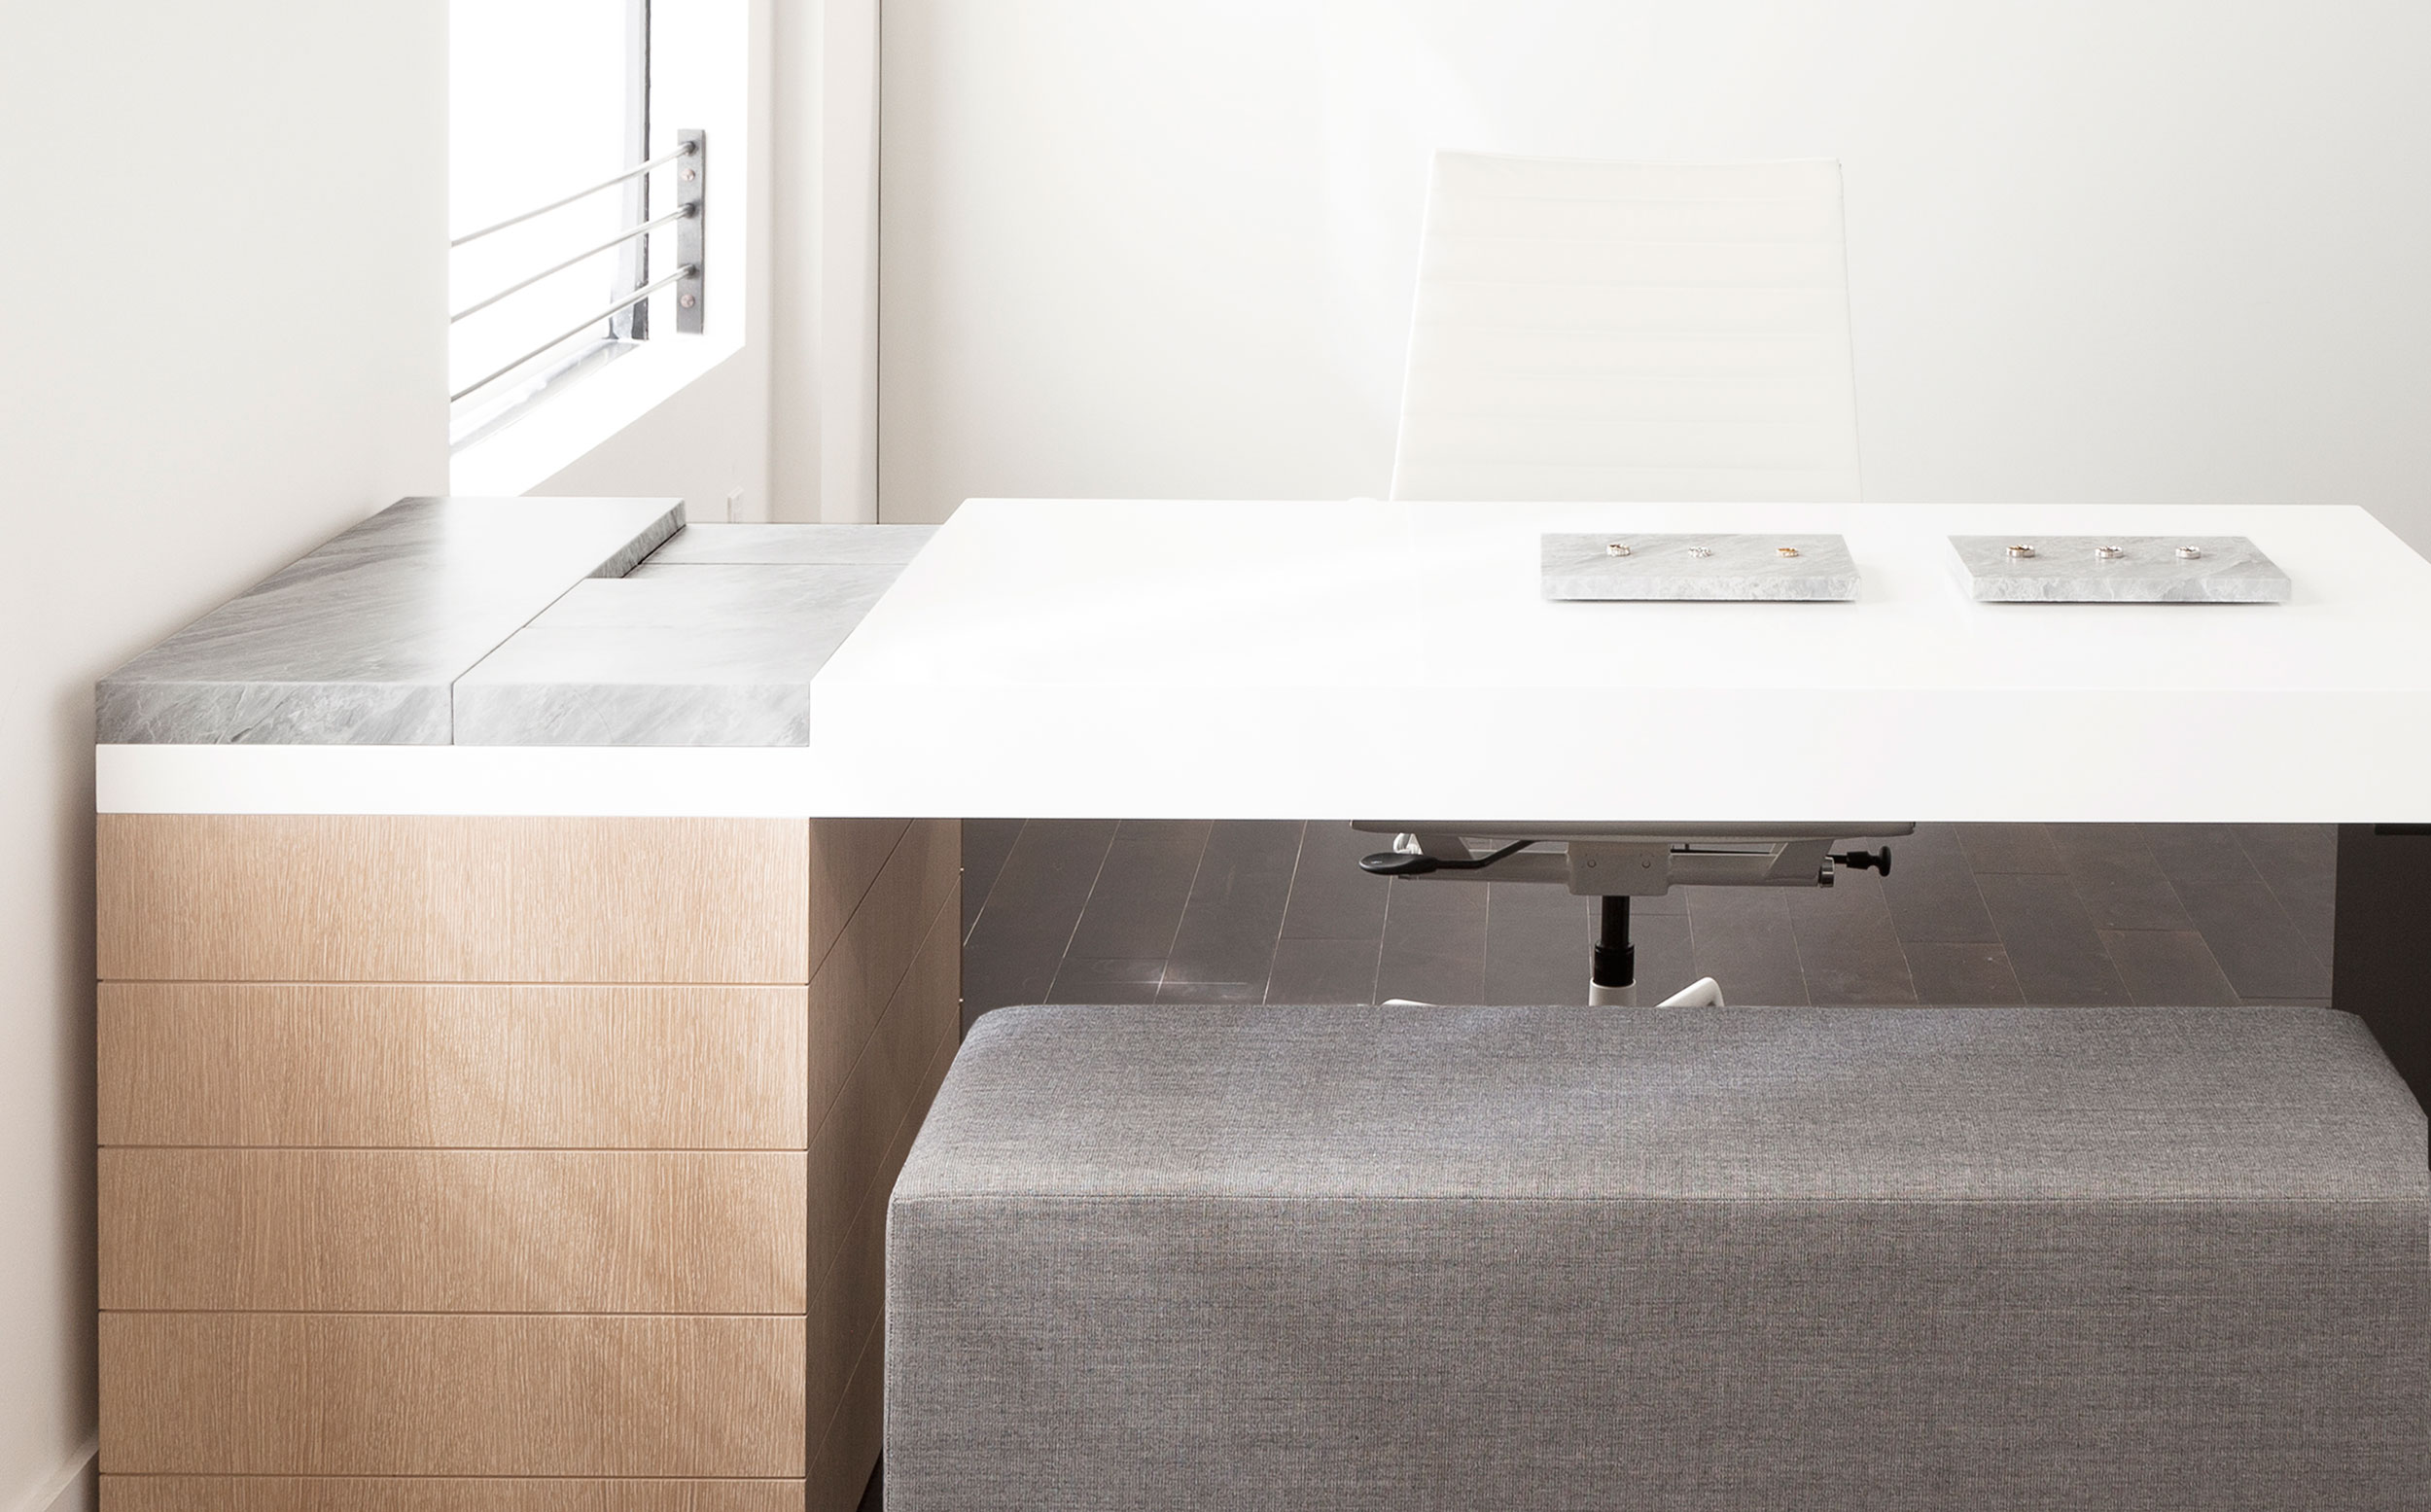 A single slab of marble was cut into smaller parts, and designed to fit into a recess in Grace's desk. During appointments, Grace is able use the felt-backed marble as presentation trays.